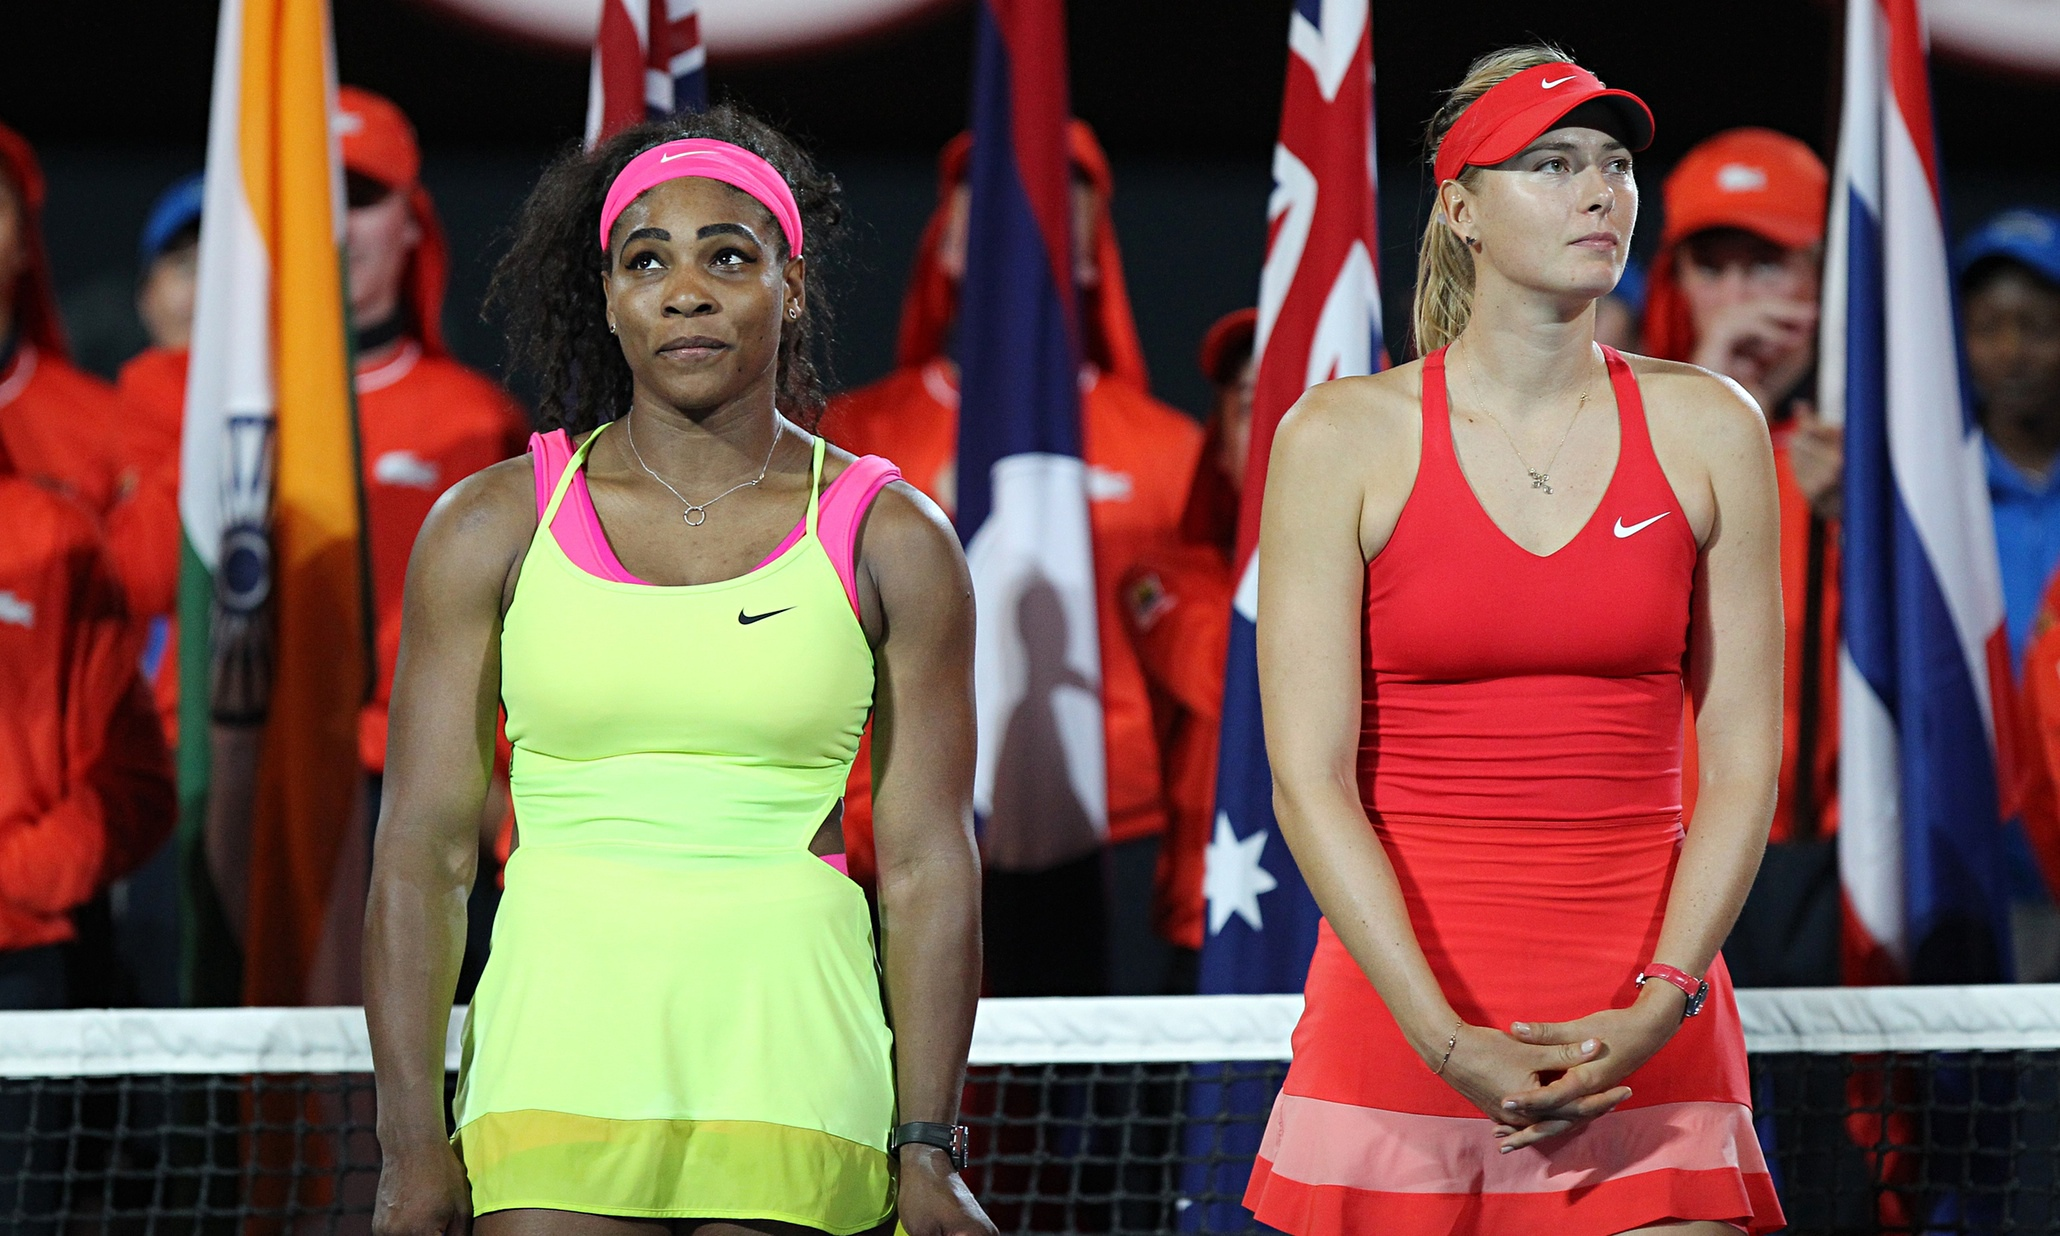 Day 13 of the 2015 Australian Open, Women's Final